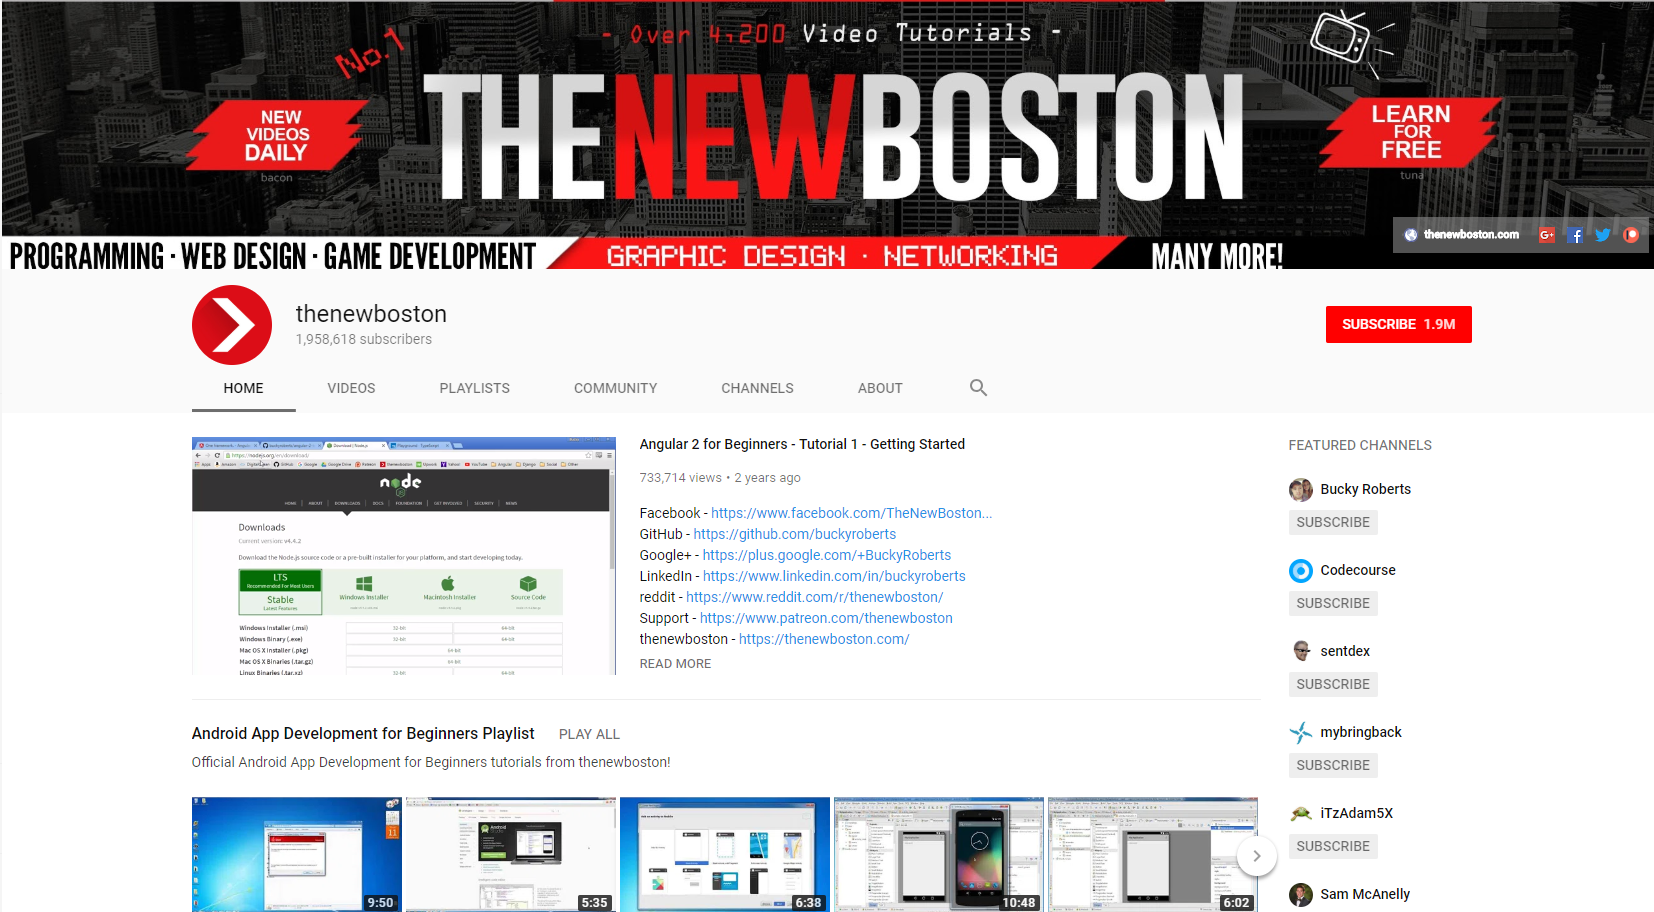 Best Web Development Youtube Channels: The New Boston YouTube Channel